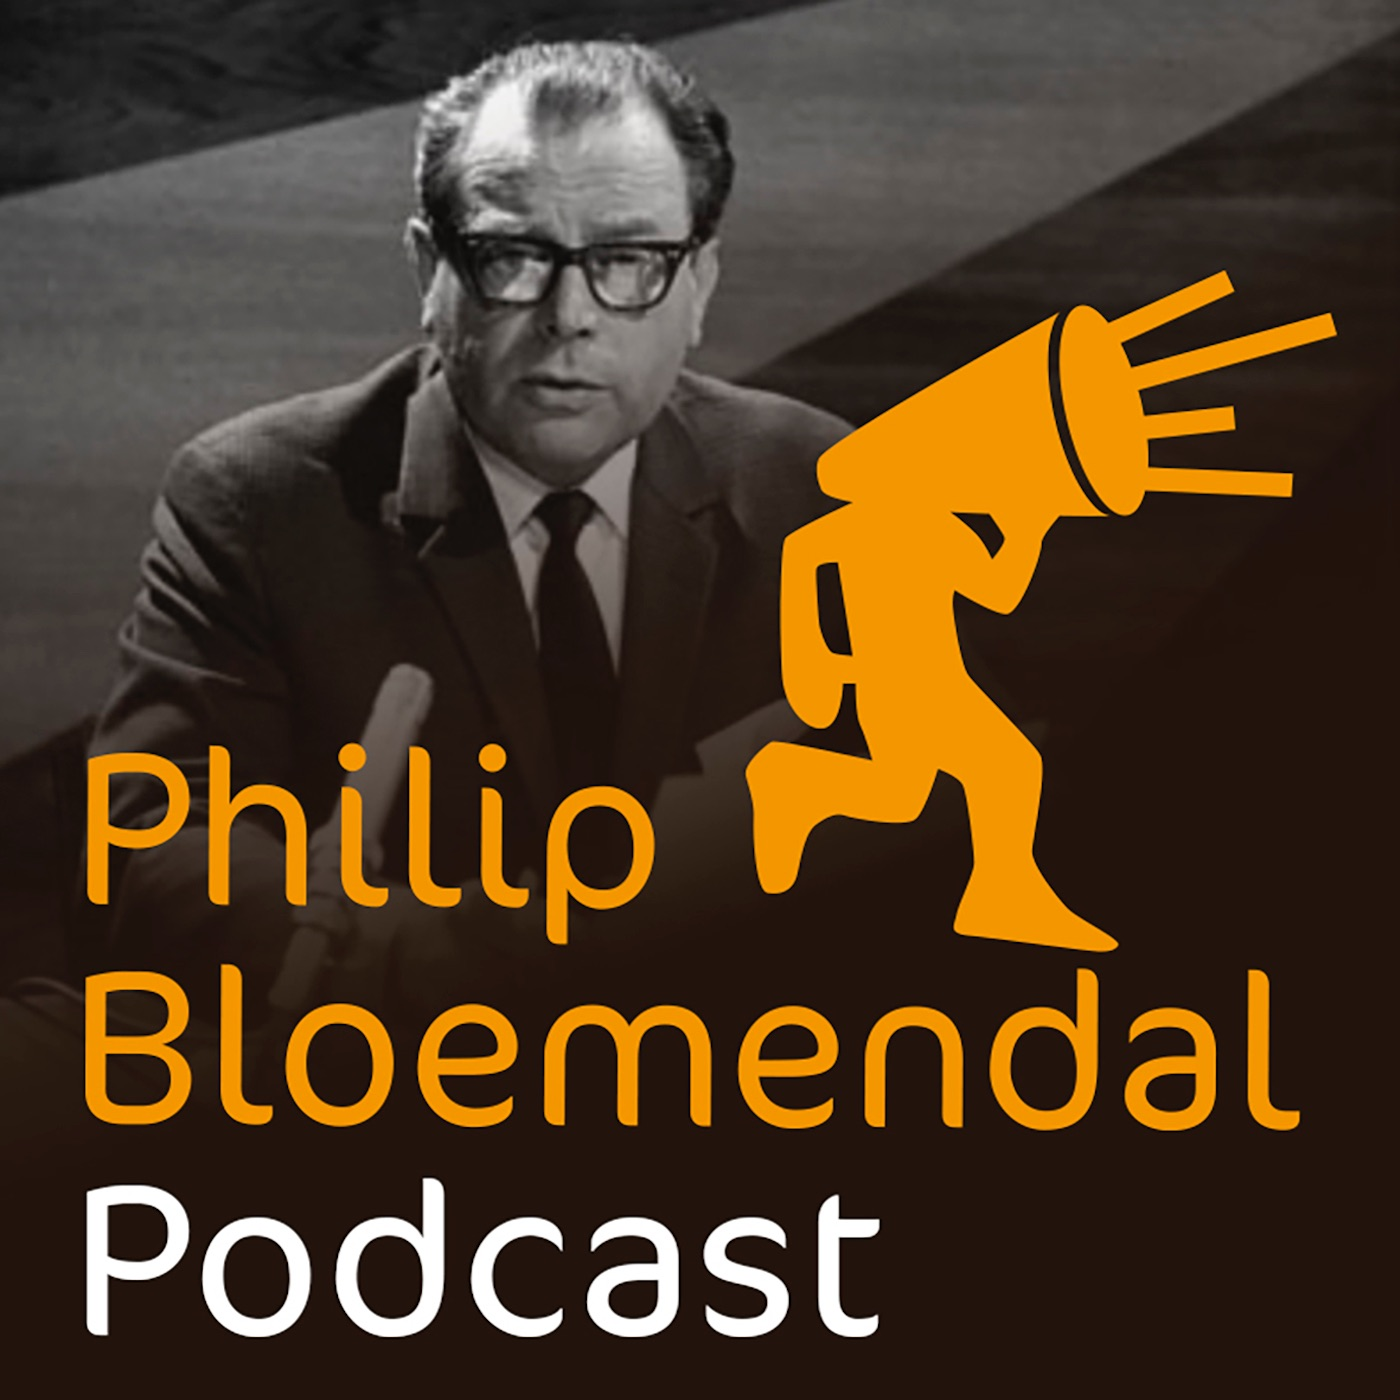 Philip Bloemendal Podcast podcast show image